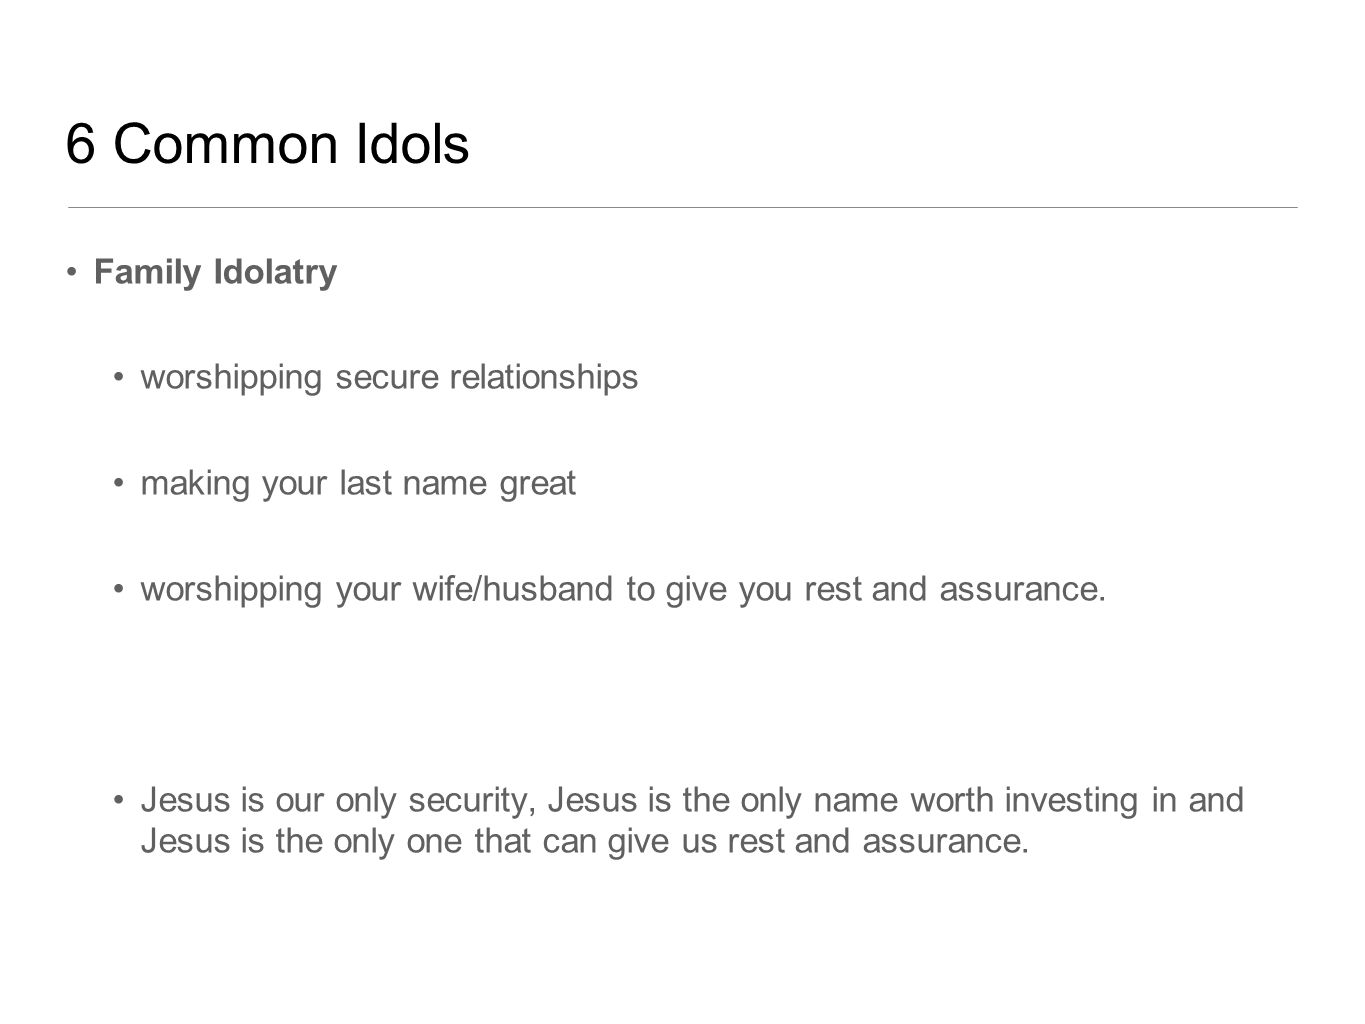 6 Common Idols Family Idolatry worshipping secure relationships making your last name great worshipping your wife/husband to give you rest and assurance.